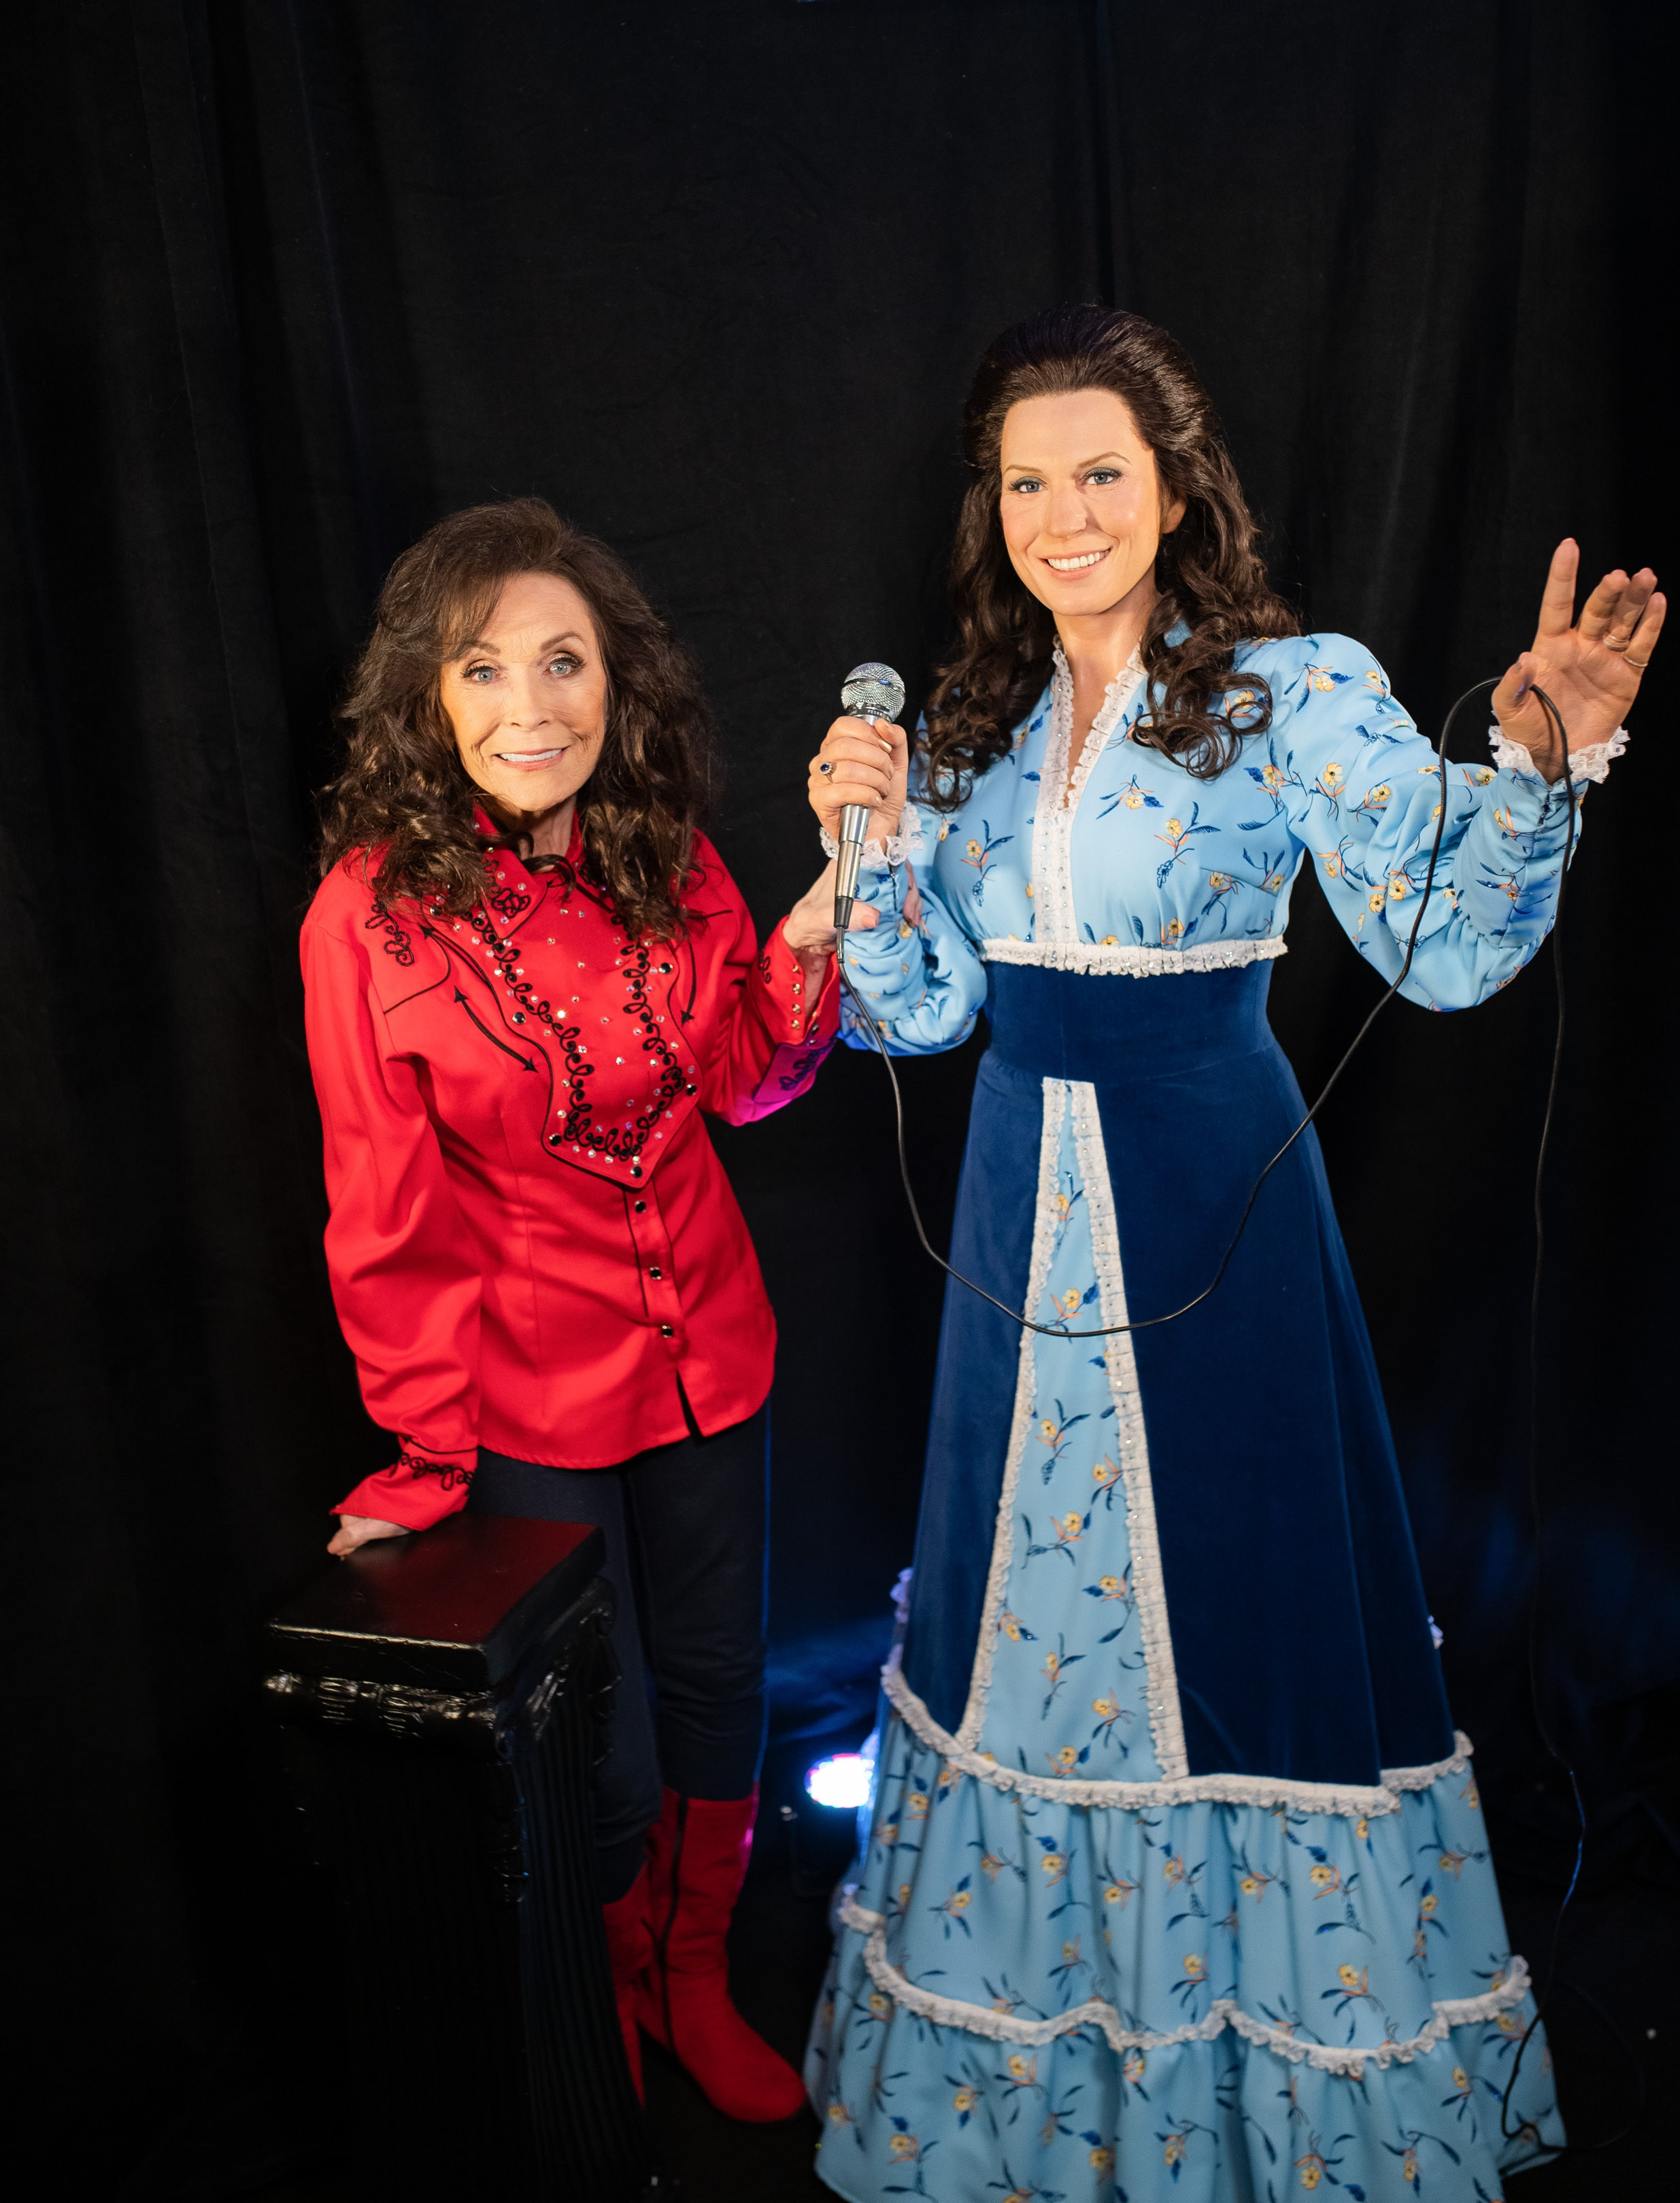 Country music legend Loretta Lynn gets a first look at her Madame Tussauds wax figure at her star-studded birthday celebration concert in Nashville; Photo: Business Wire